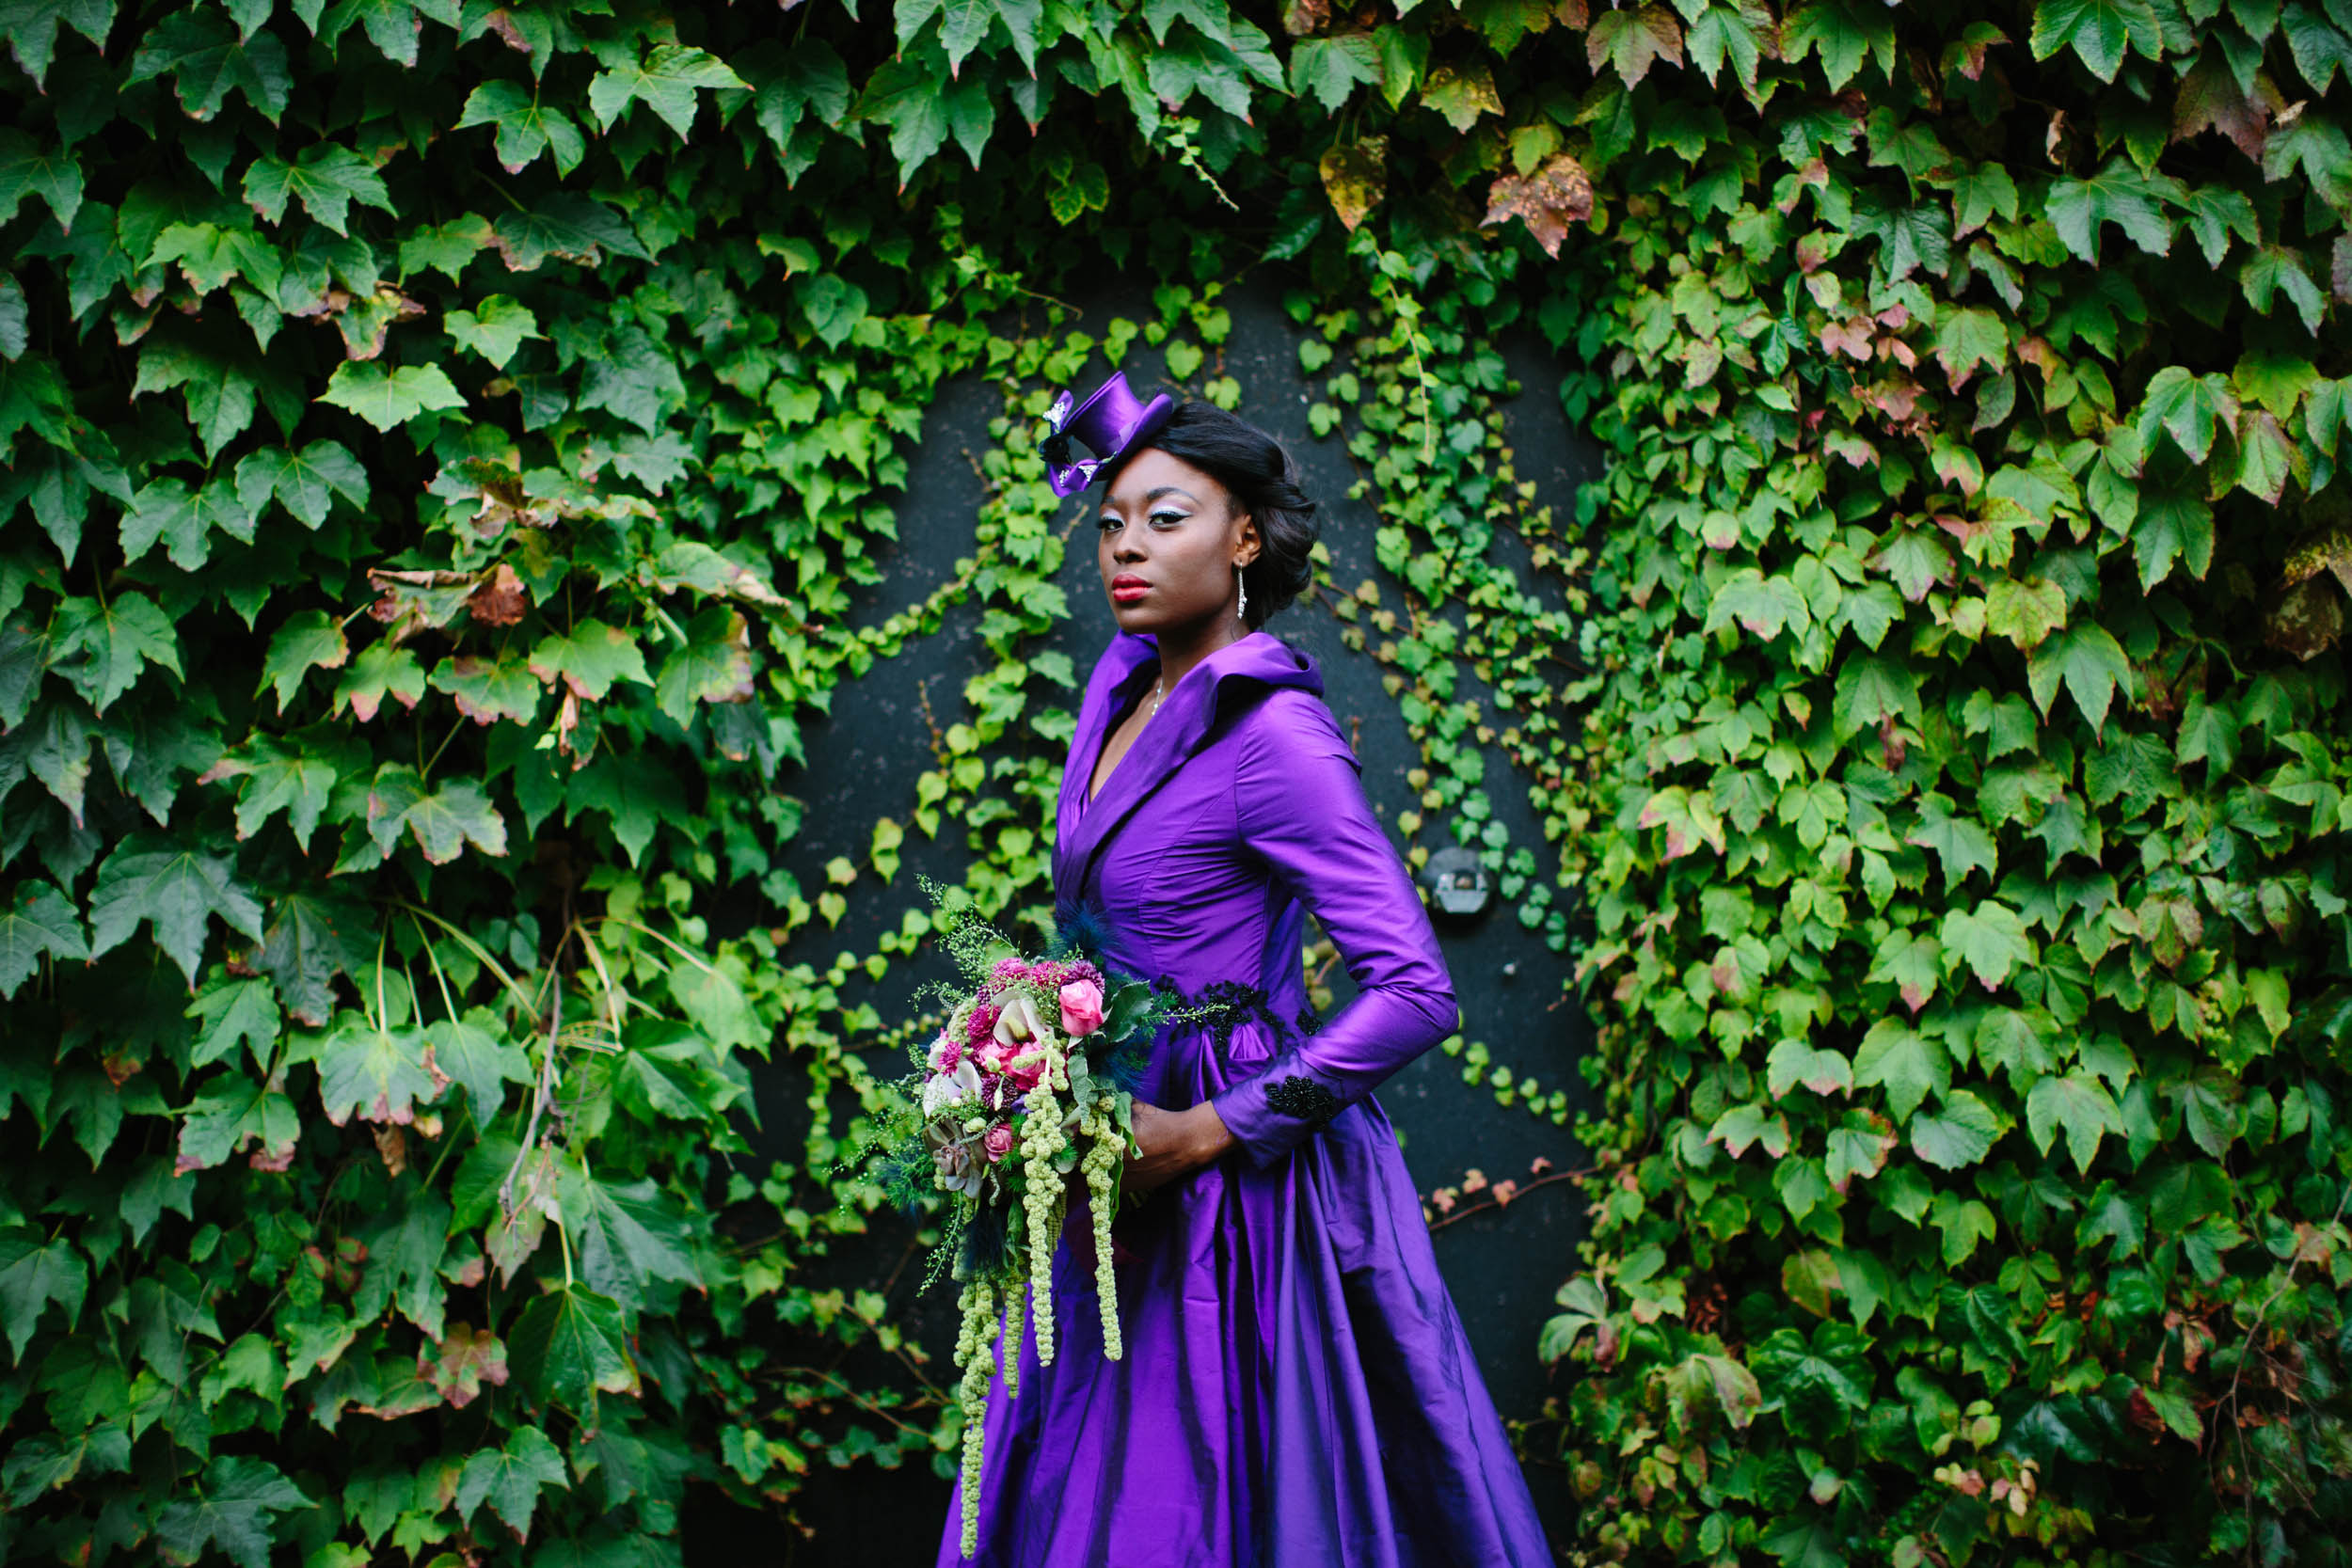 purple wedding dress - burlesque wedding - alternative bridal wear - unique wedding dress - unique wedding coat - alternative bride